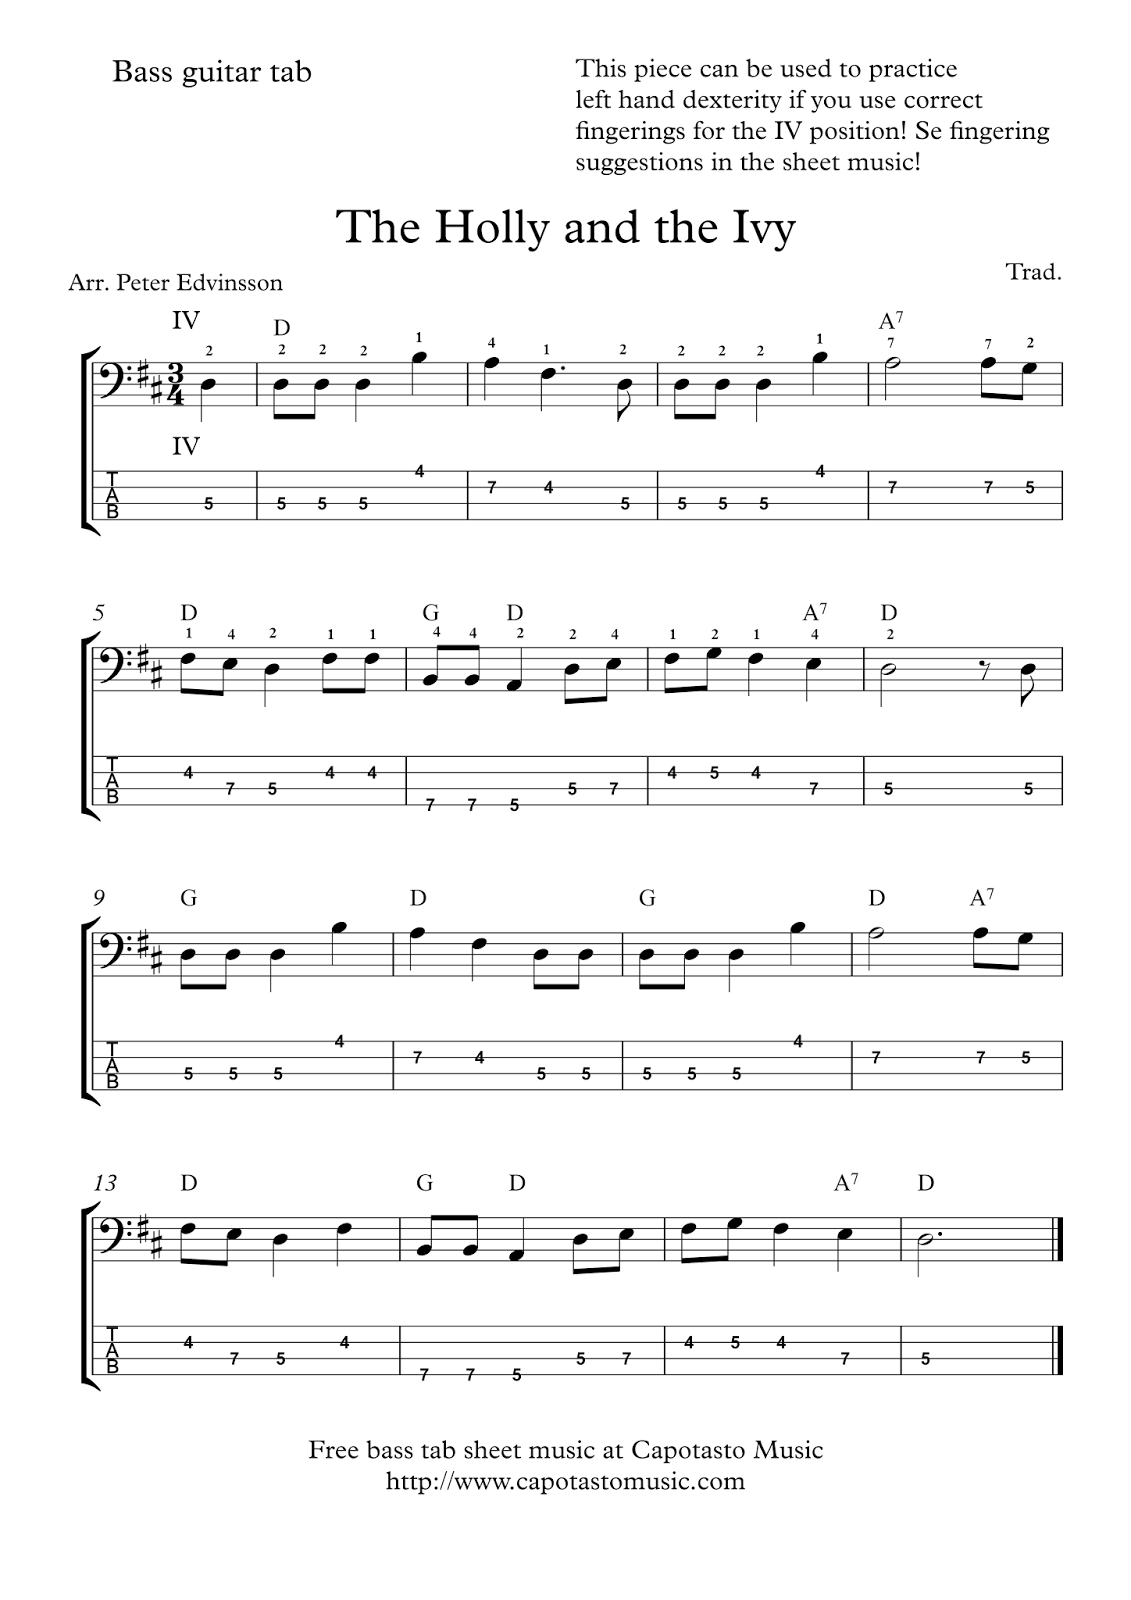 bass guitar tab sheet music pdf